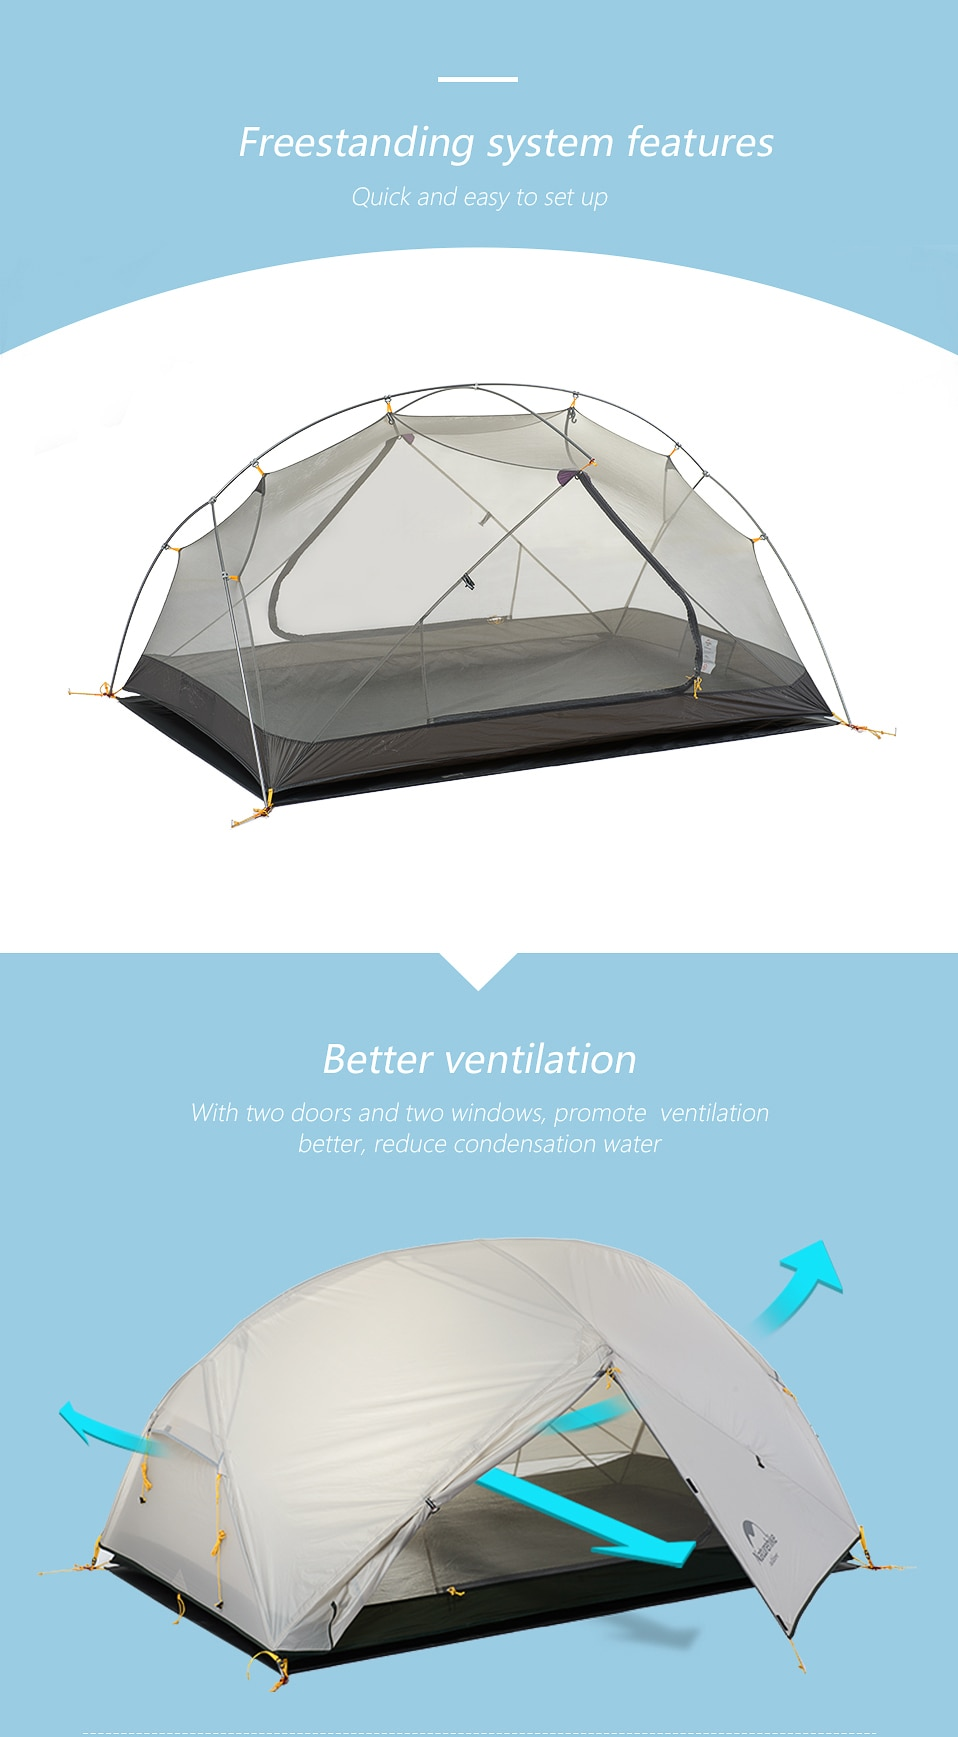 2020 New Naturehike Mongar 2 Persons Camping Tent 20D Nylon Fabic Double Layer Waterproof Tent for 3 Seasons NH17T007-M